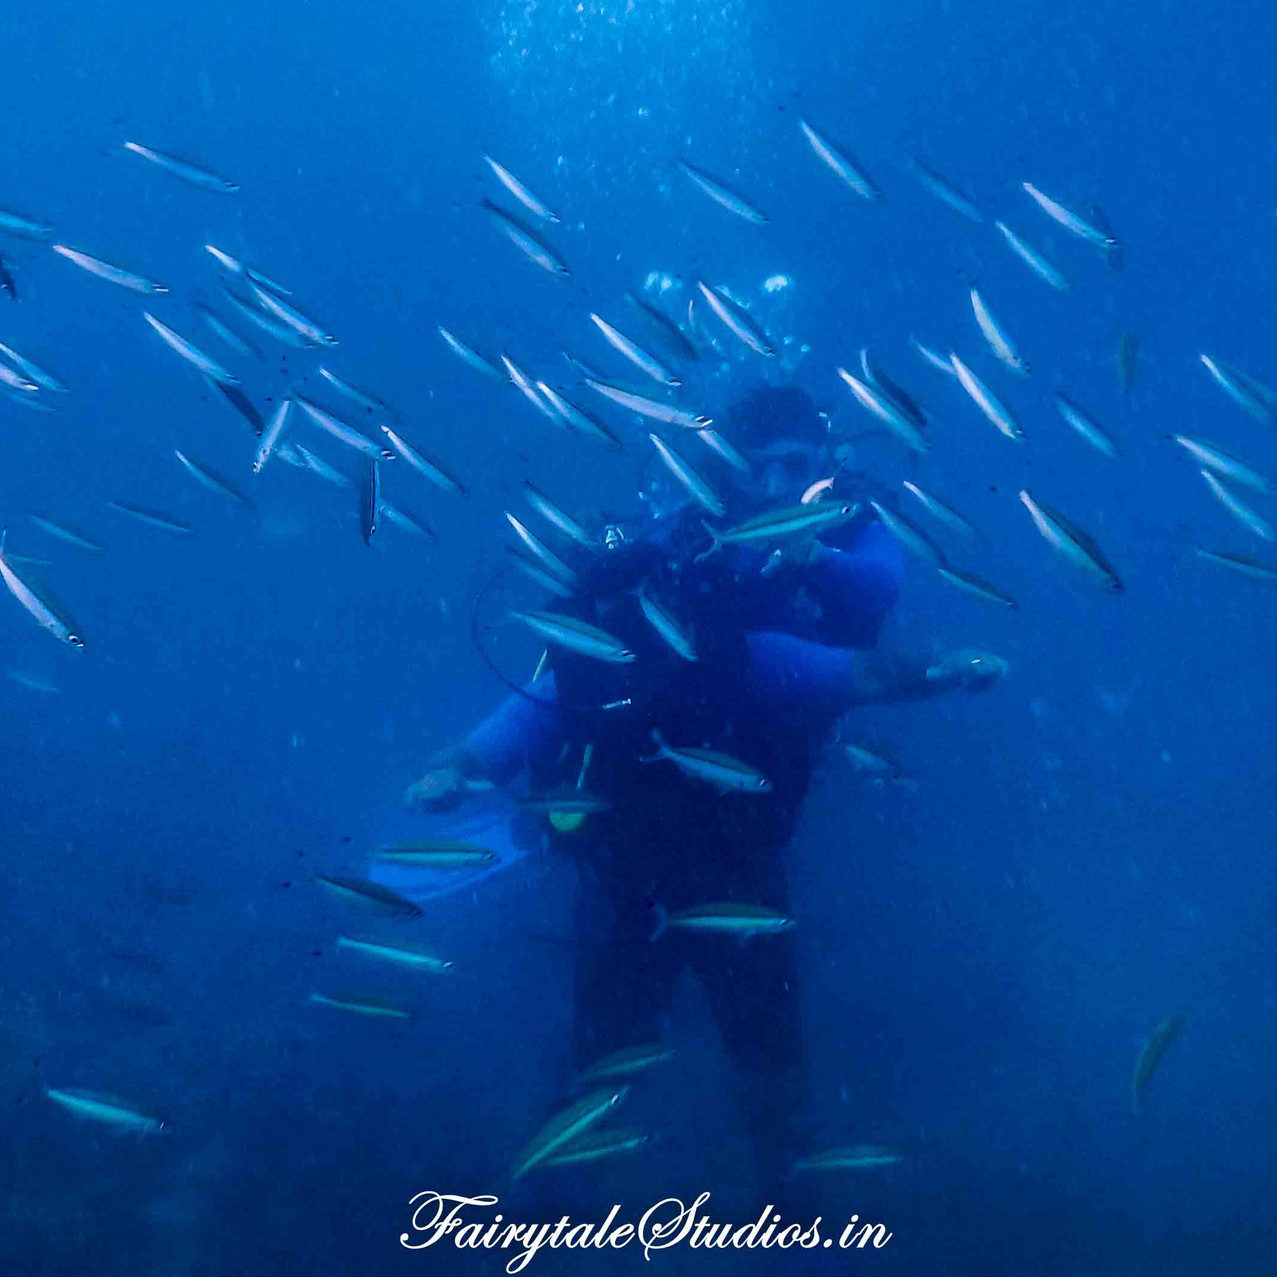 Under water_Scubalov_The Andaman Odyssey_Fairytale Travels (42)